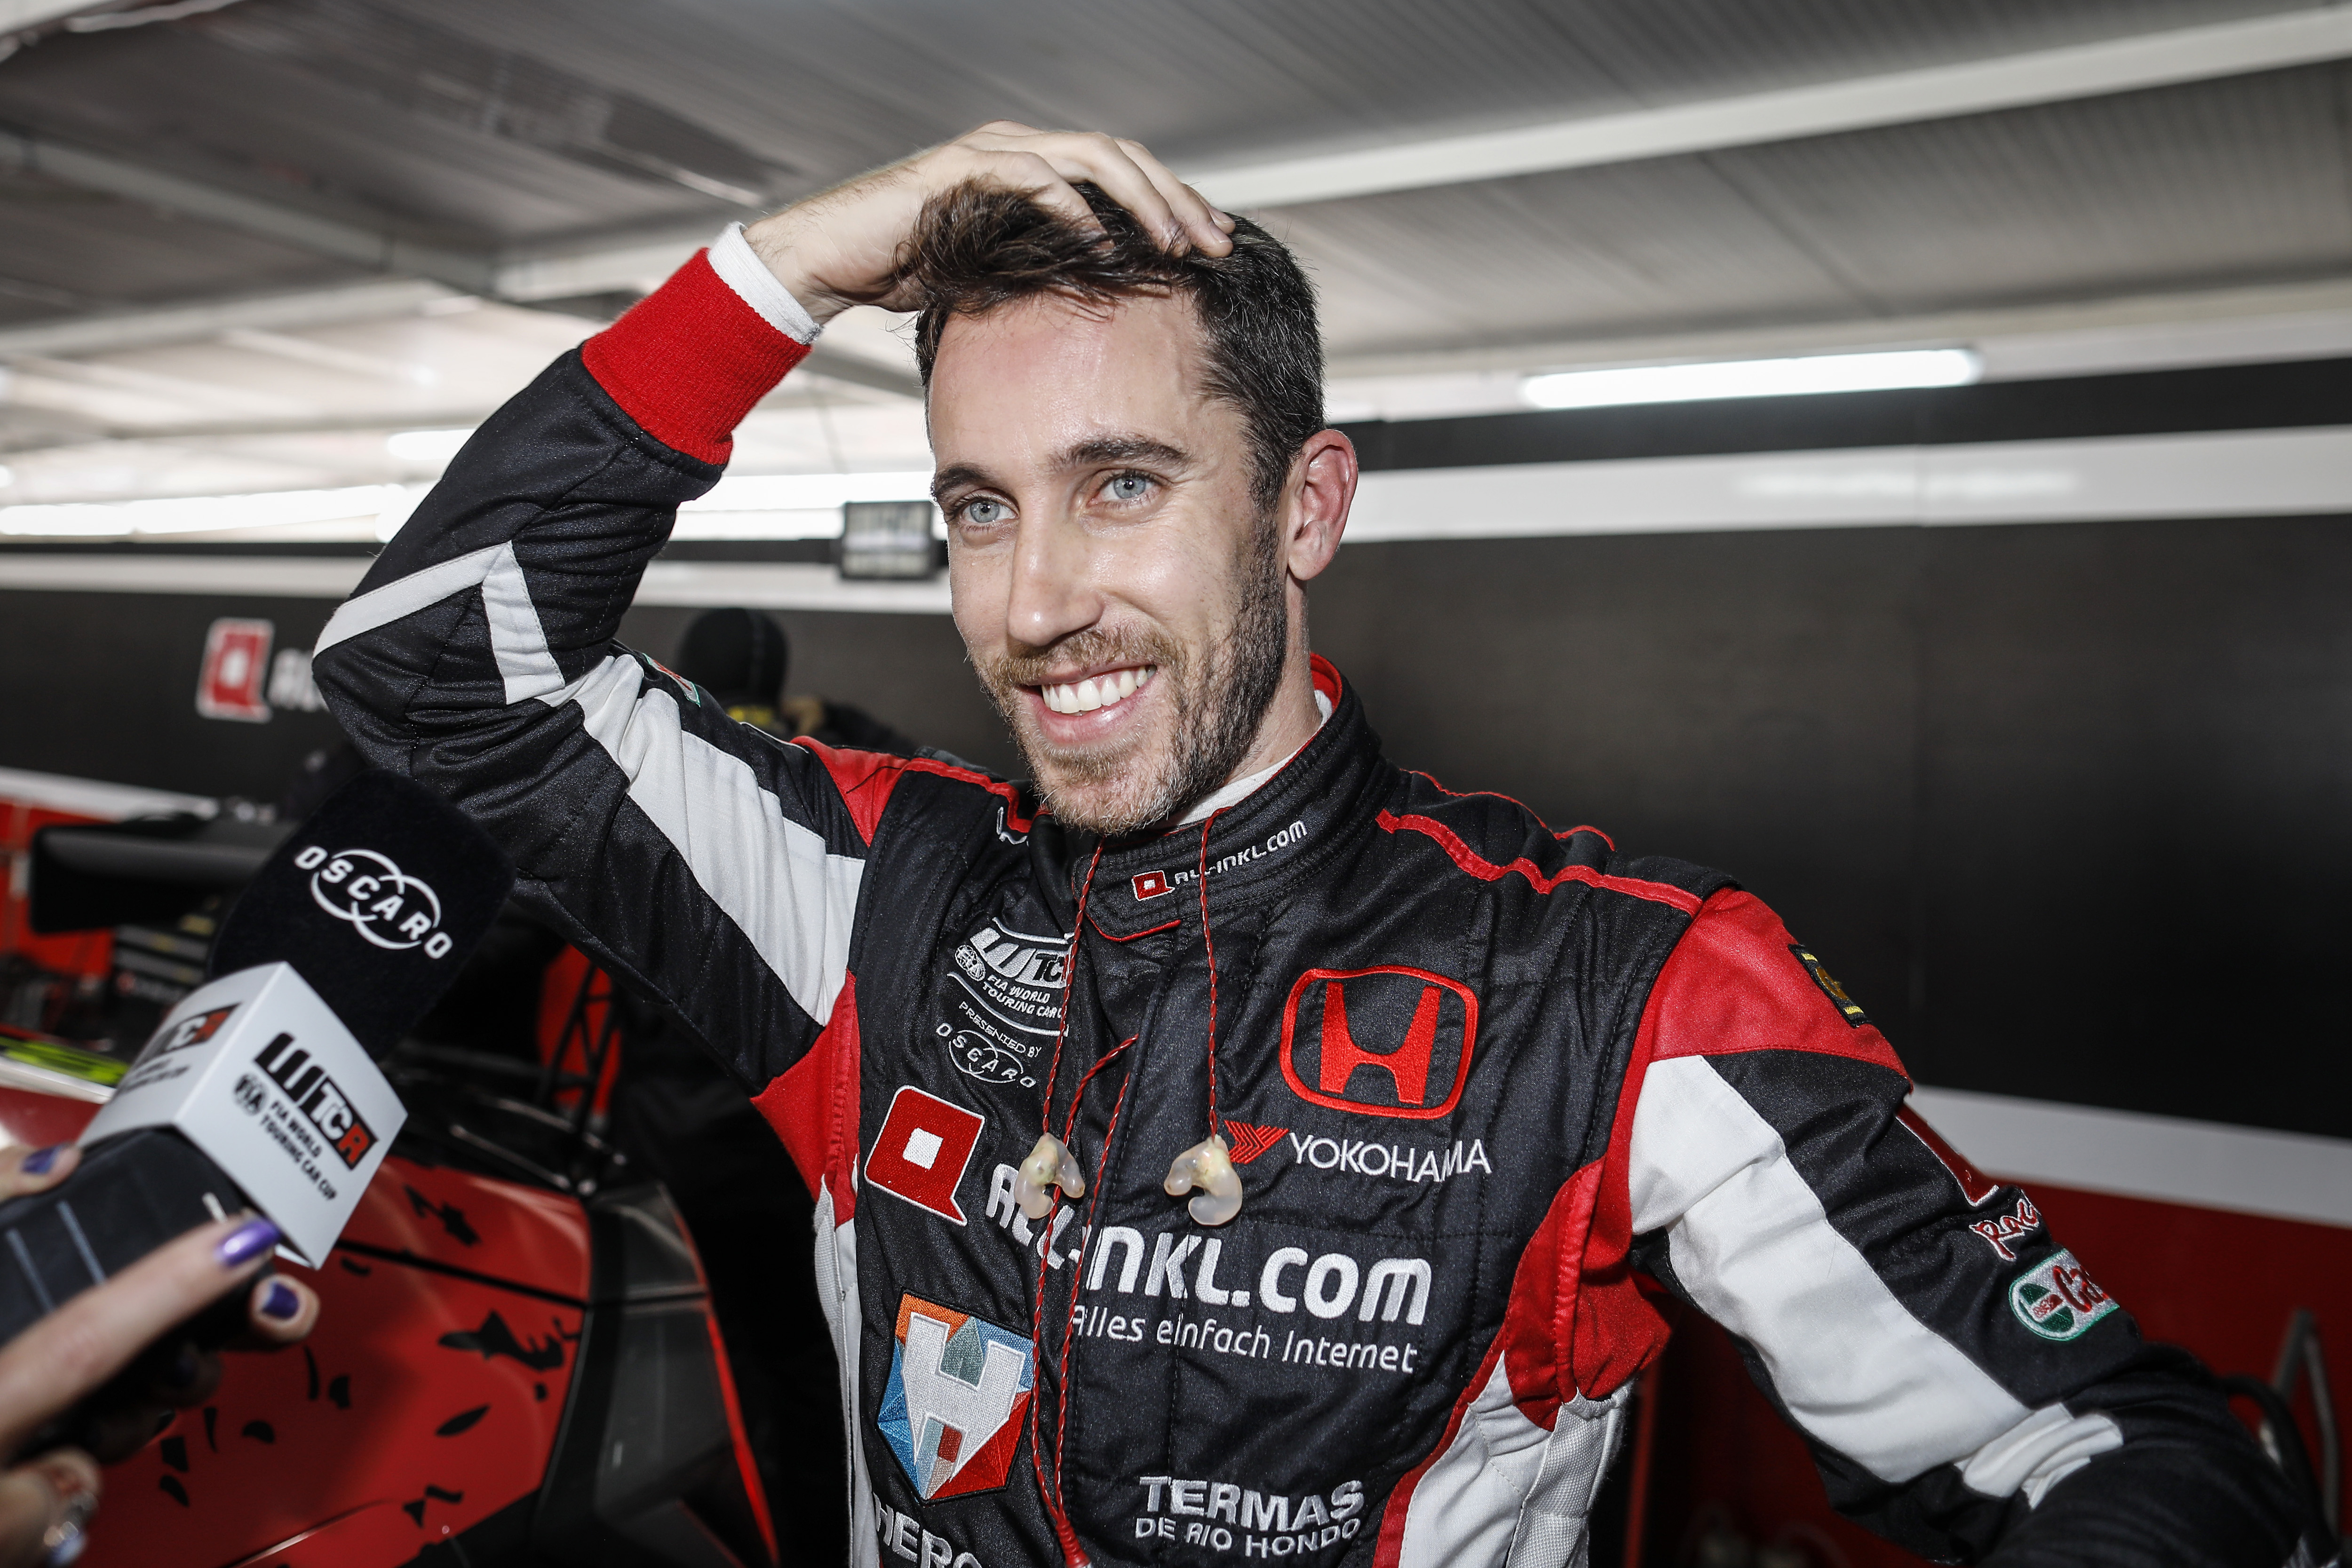 WTCR racer Guerrieri: powered by Honda, inspired by Senna